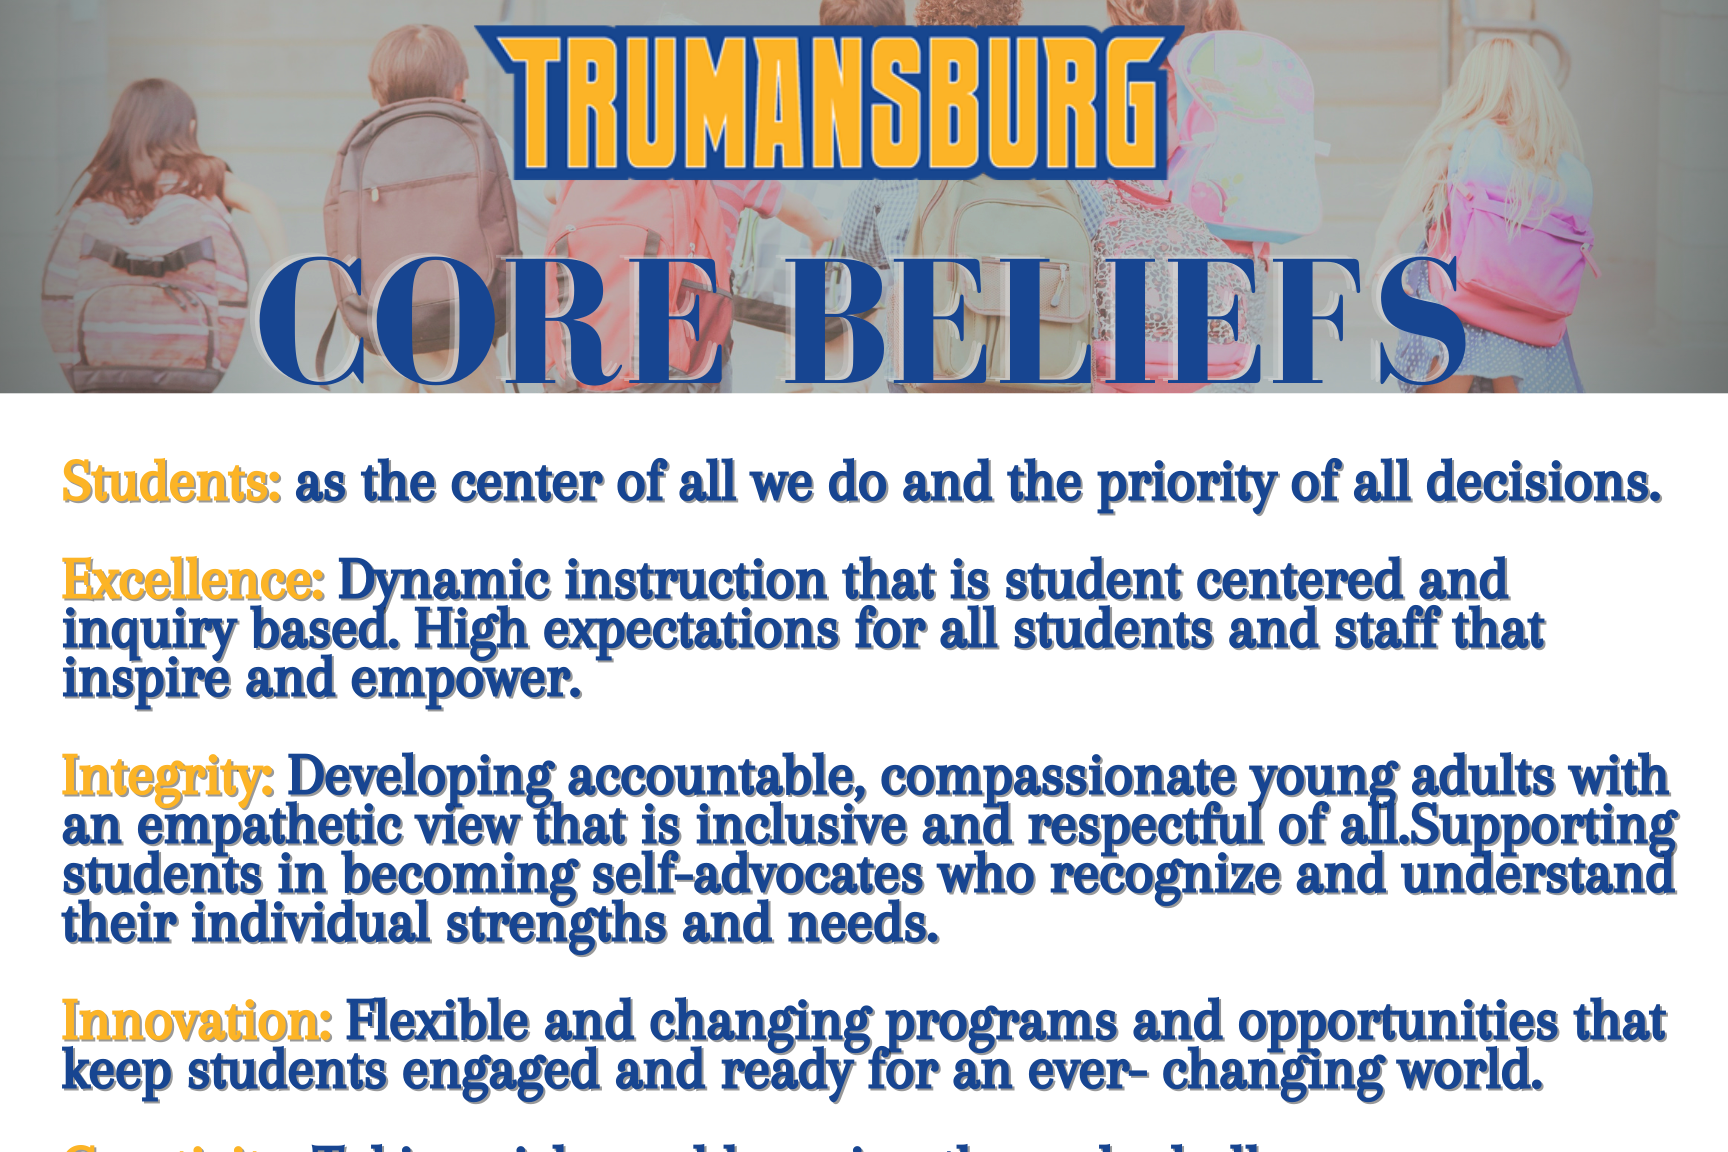 Core Beliefs - Students: as the center of all we do and the priority of all decisions  Excellence: Dynamic instruction that is student centered and inquiry based. High expectations for all students and staff that inspire and empower  Integrity: Developing accountable, compassionate young adults with an empathetic view that is inclusive and respectful of all. Supporting students in becoming self-advocates who recognize and understand their individual strengths and needs.  Innovation: Flexible and changing programs and opportunities that keep students engaged and ready for an every-changing world.